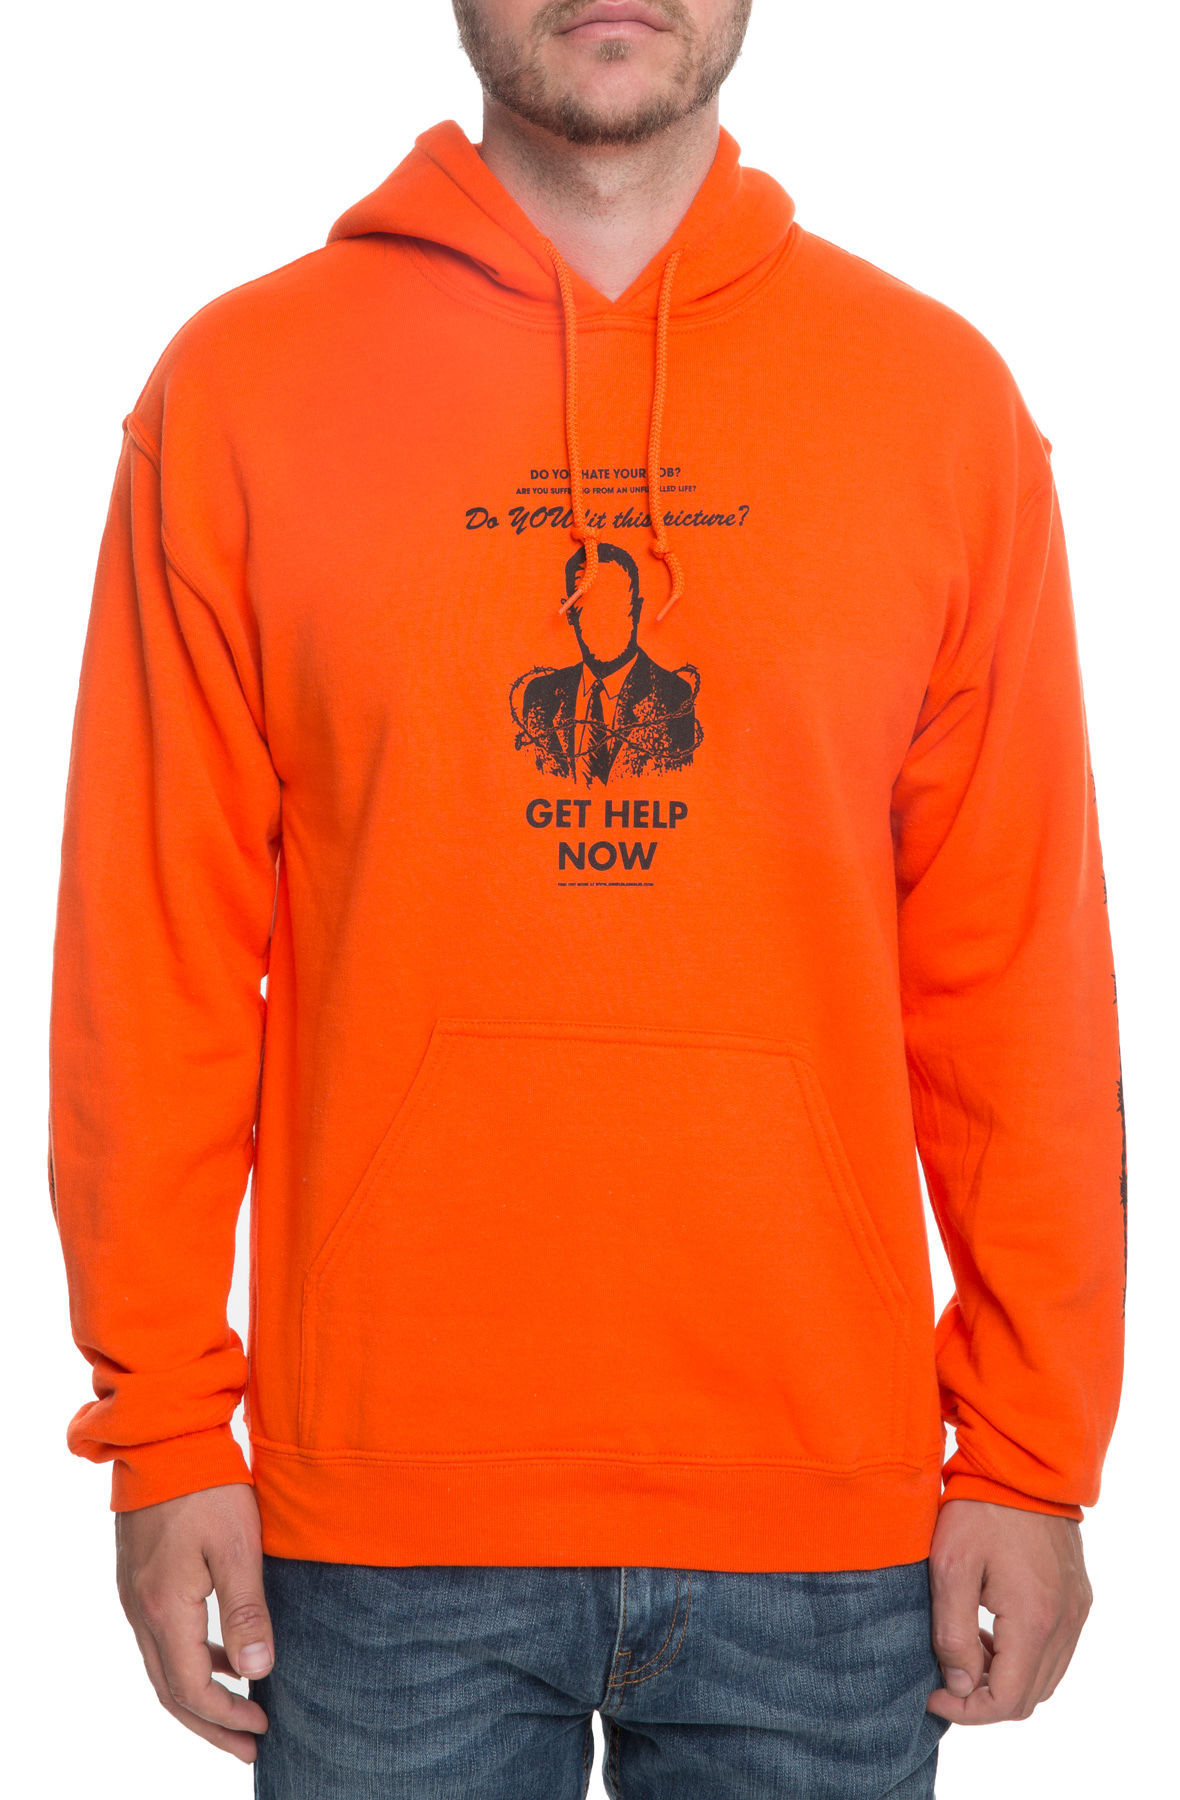 The Get Help Now Hoodie